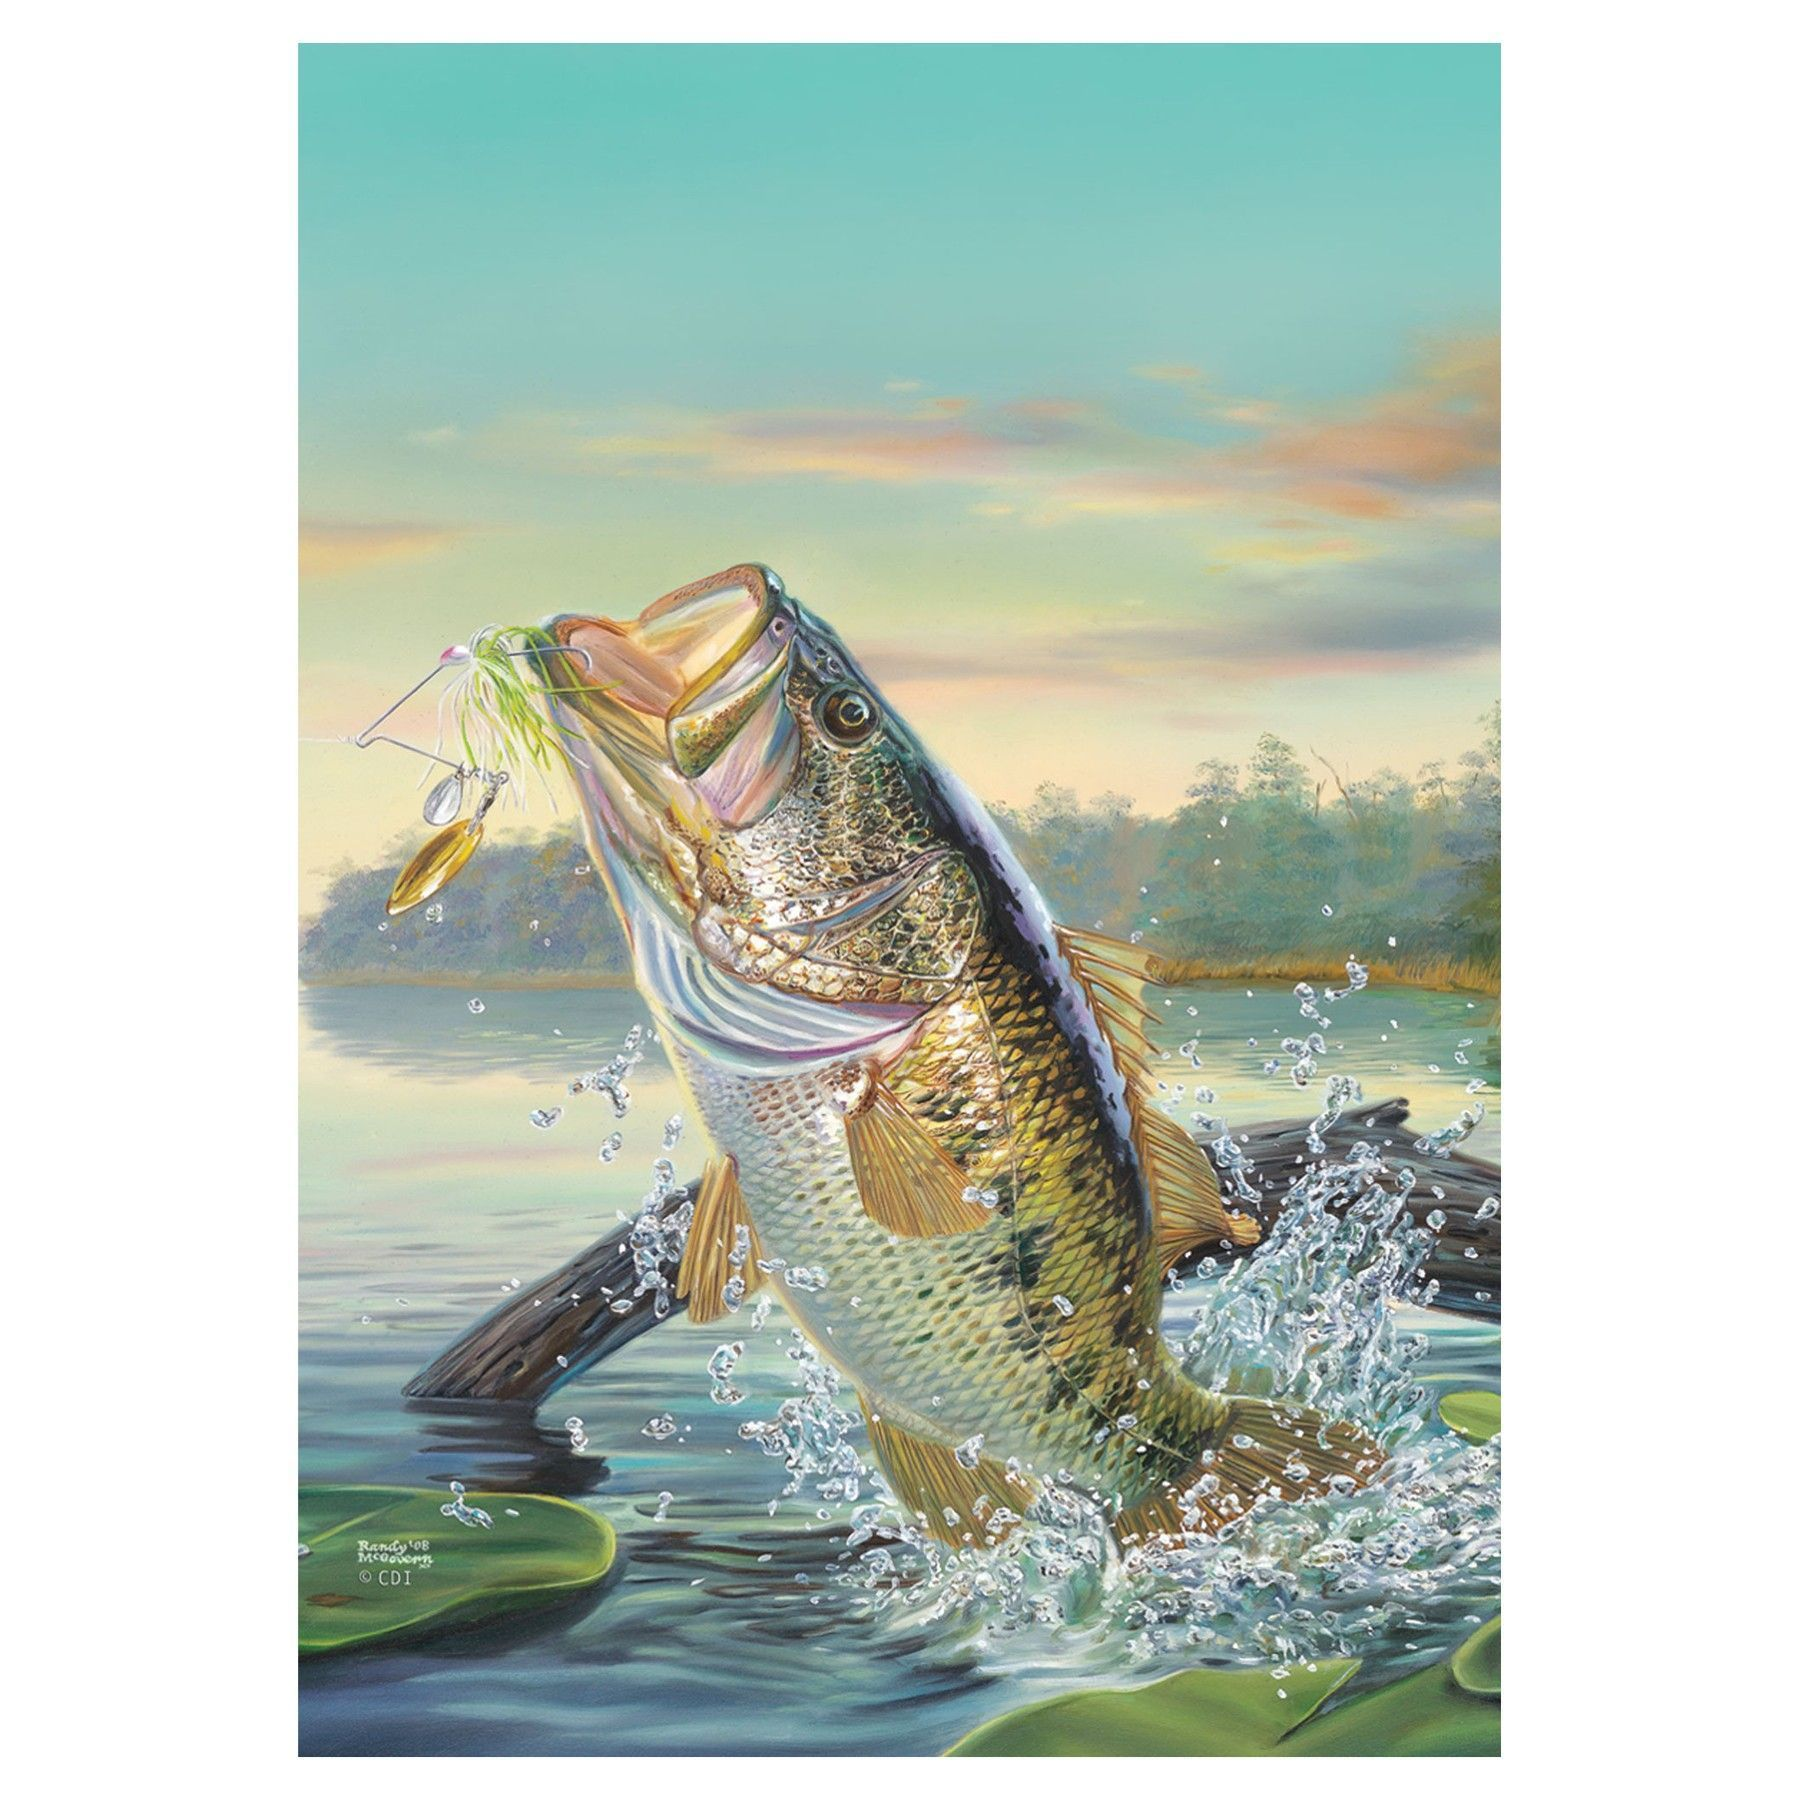 Https Www Ecopetit Cat Wpic Mpic 33 335213 Bass Fishing Background For Iphone Jpg In 2020 Largemouth Bass Wallpaper Fish